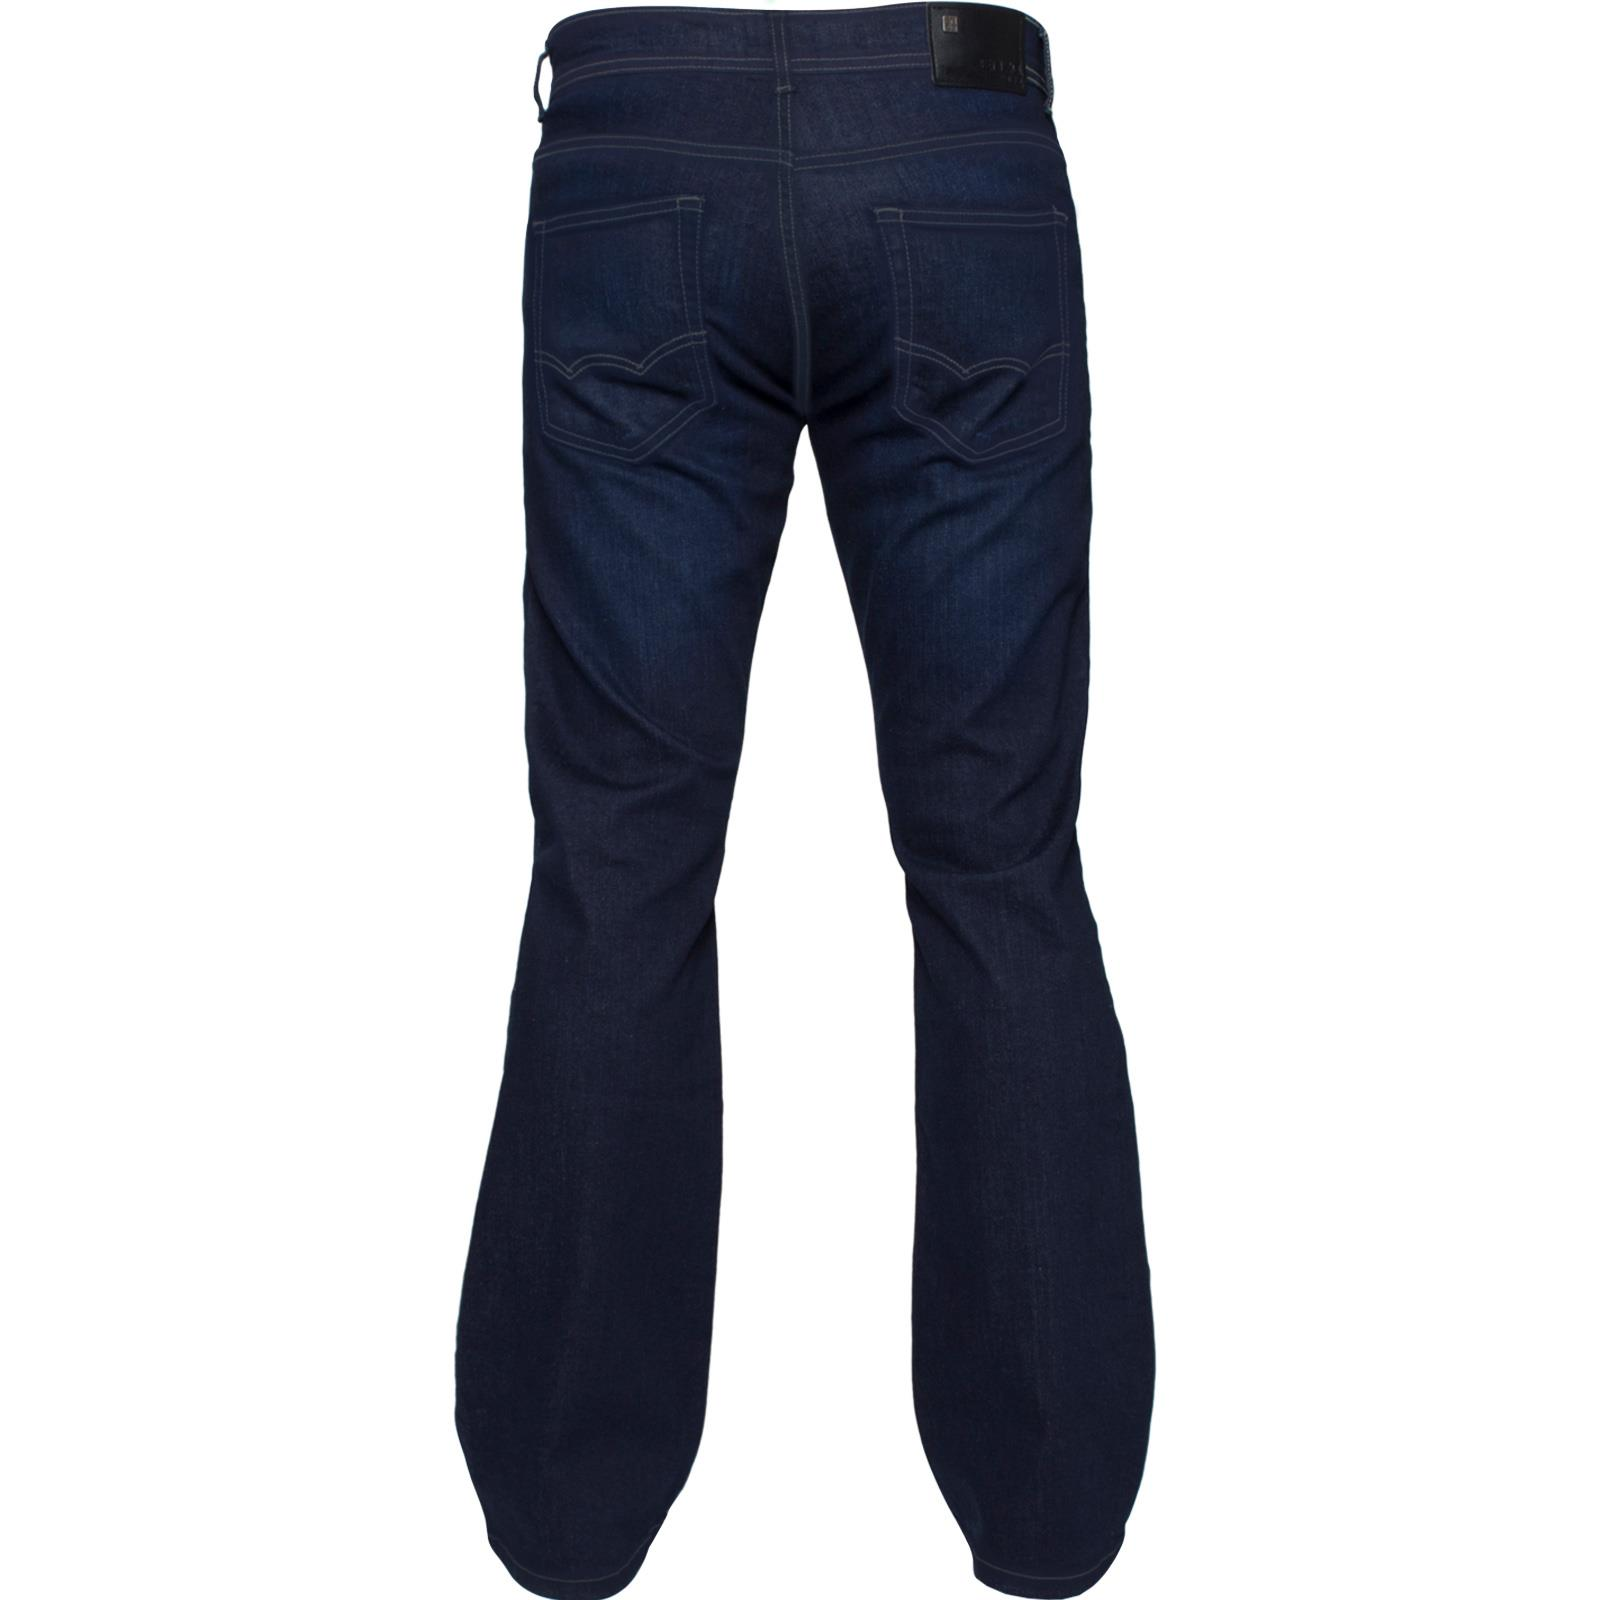 Enzo-Designer-Mens-Bootcut-Flared-Jeans-Stretch-Wide-Leg-Denim-Pants-All-Sizes thumbnail 19